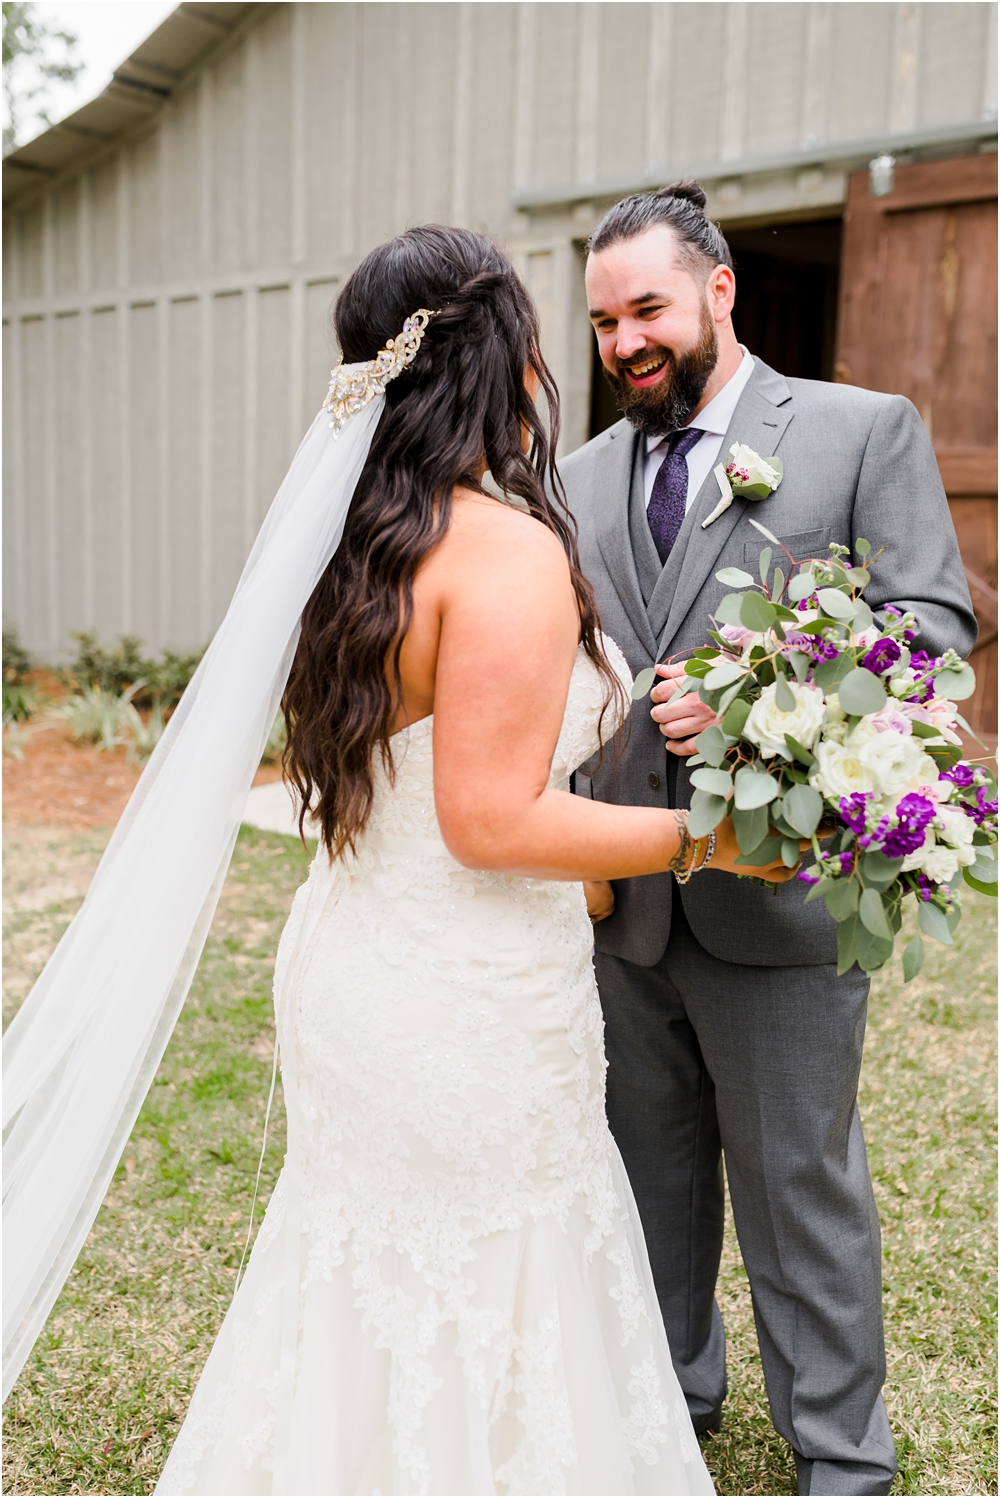 loblolly-rise-tallahassee-wedding-kiersten-stevenson-photography-51.jpg